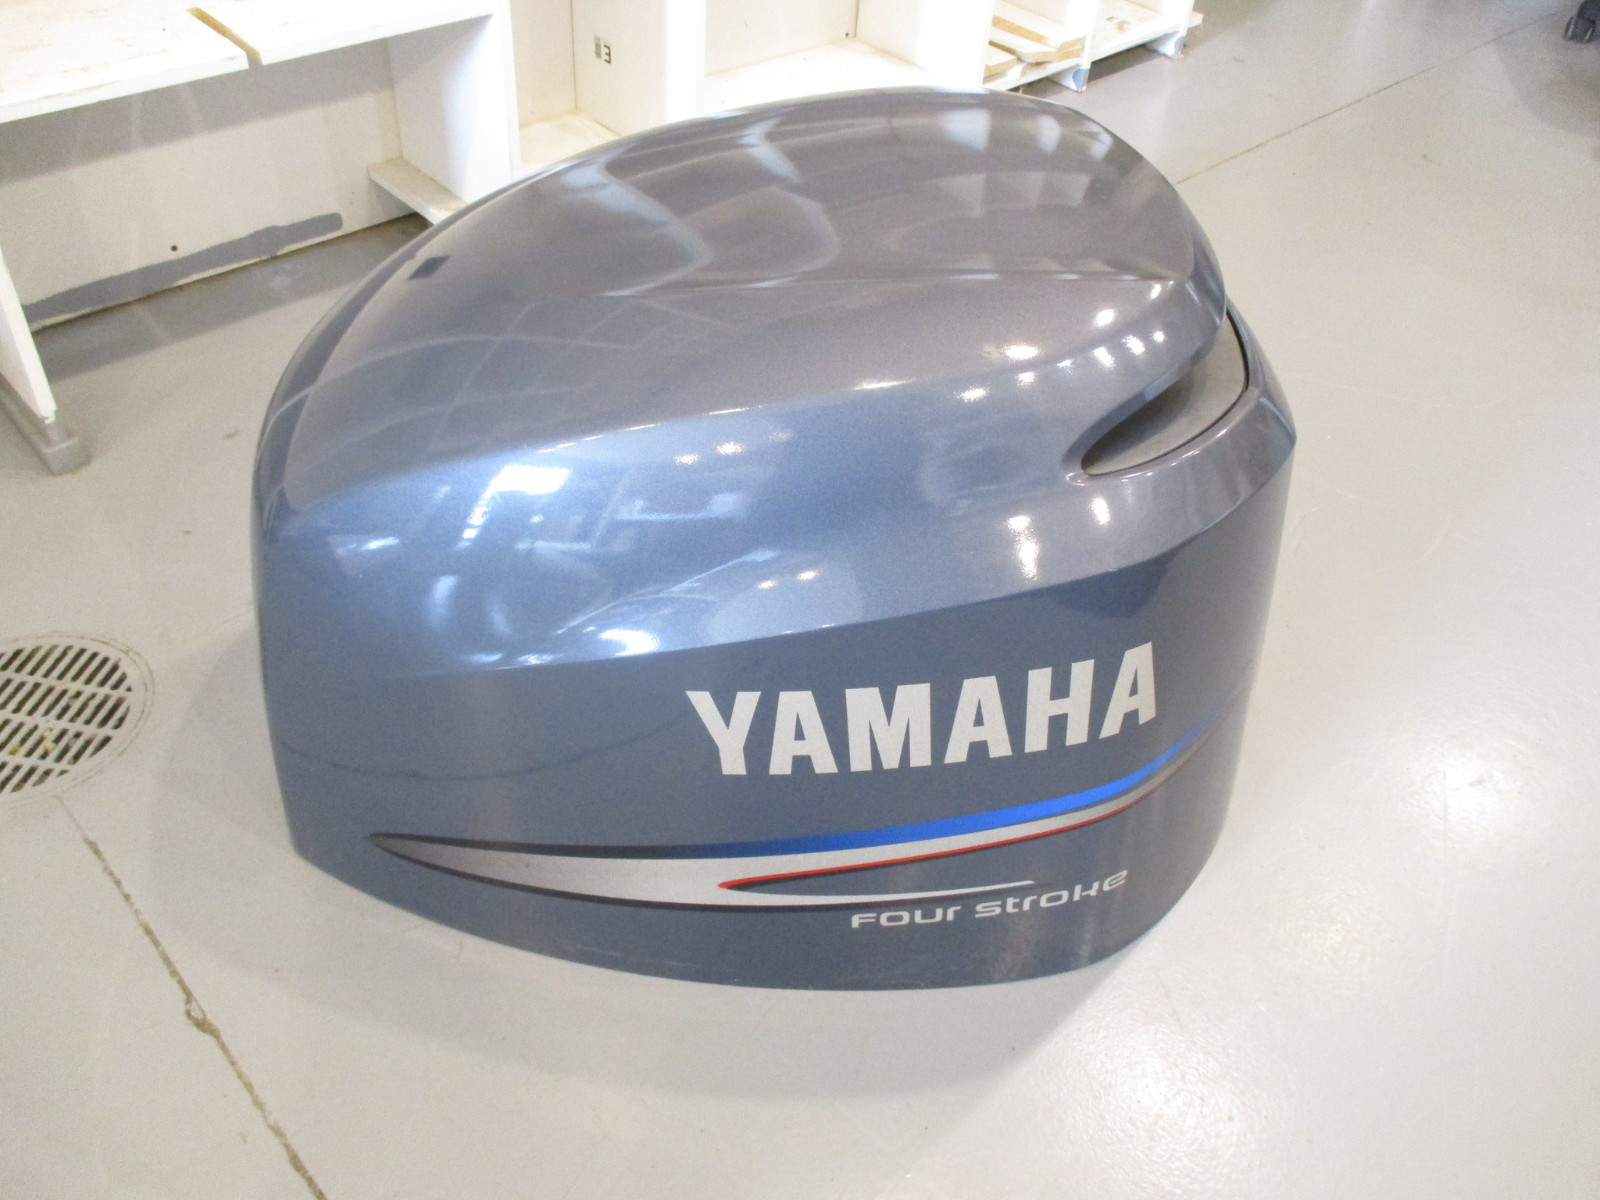 Yamaha marine outboard motor cover cowl 225 four stroke fuel yamaha marine outboard motor cover cowl 225 four stroke fuel injection sciox Image collections